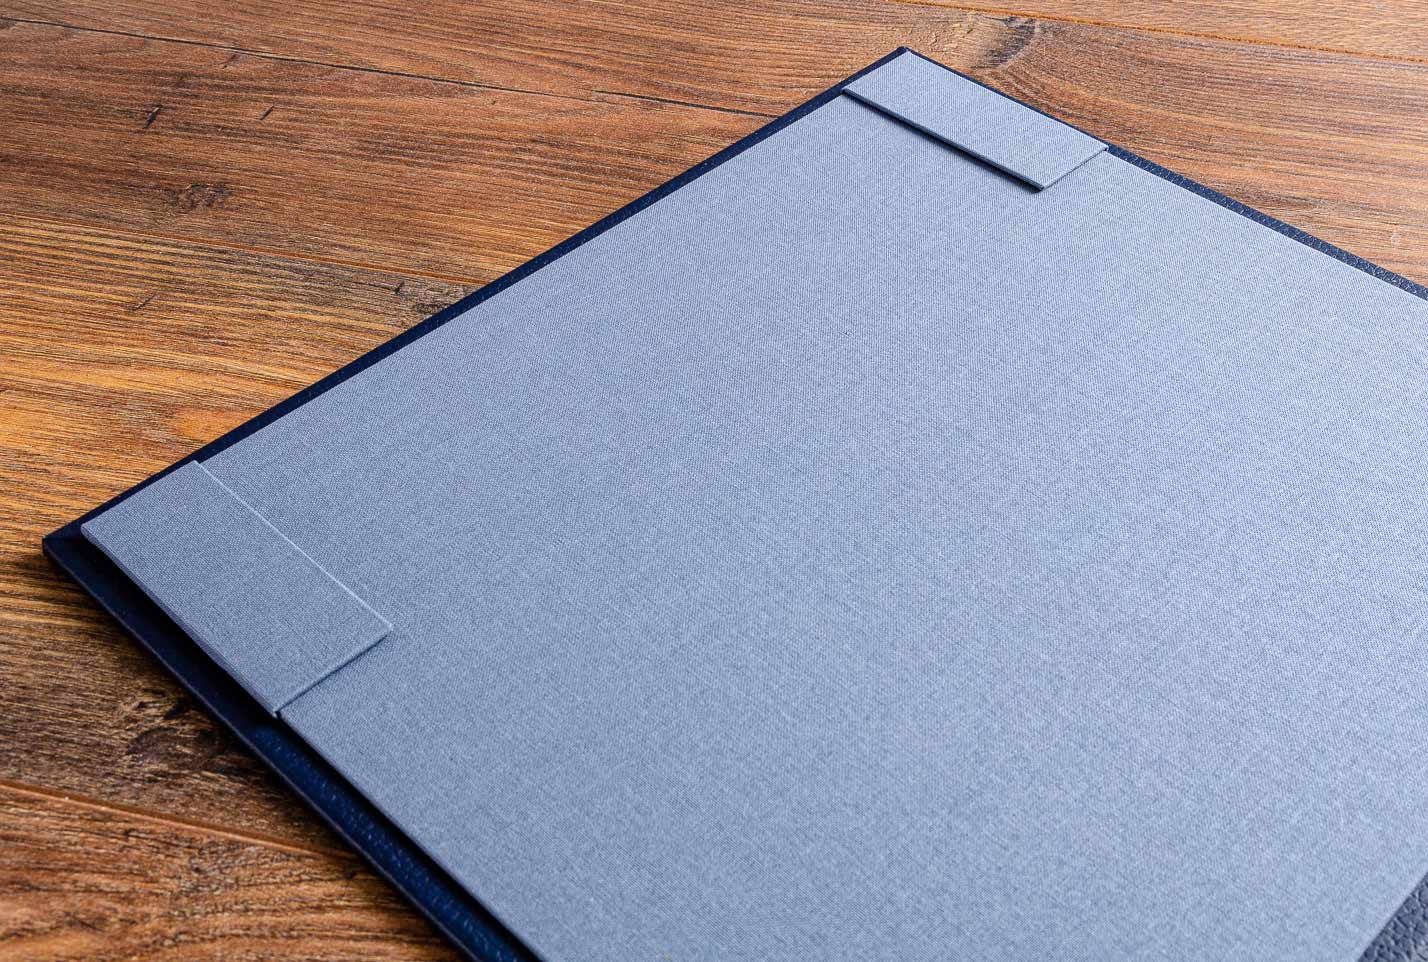 We now offer contents and index page holders for the inner covers of our medical portfolios